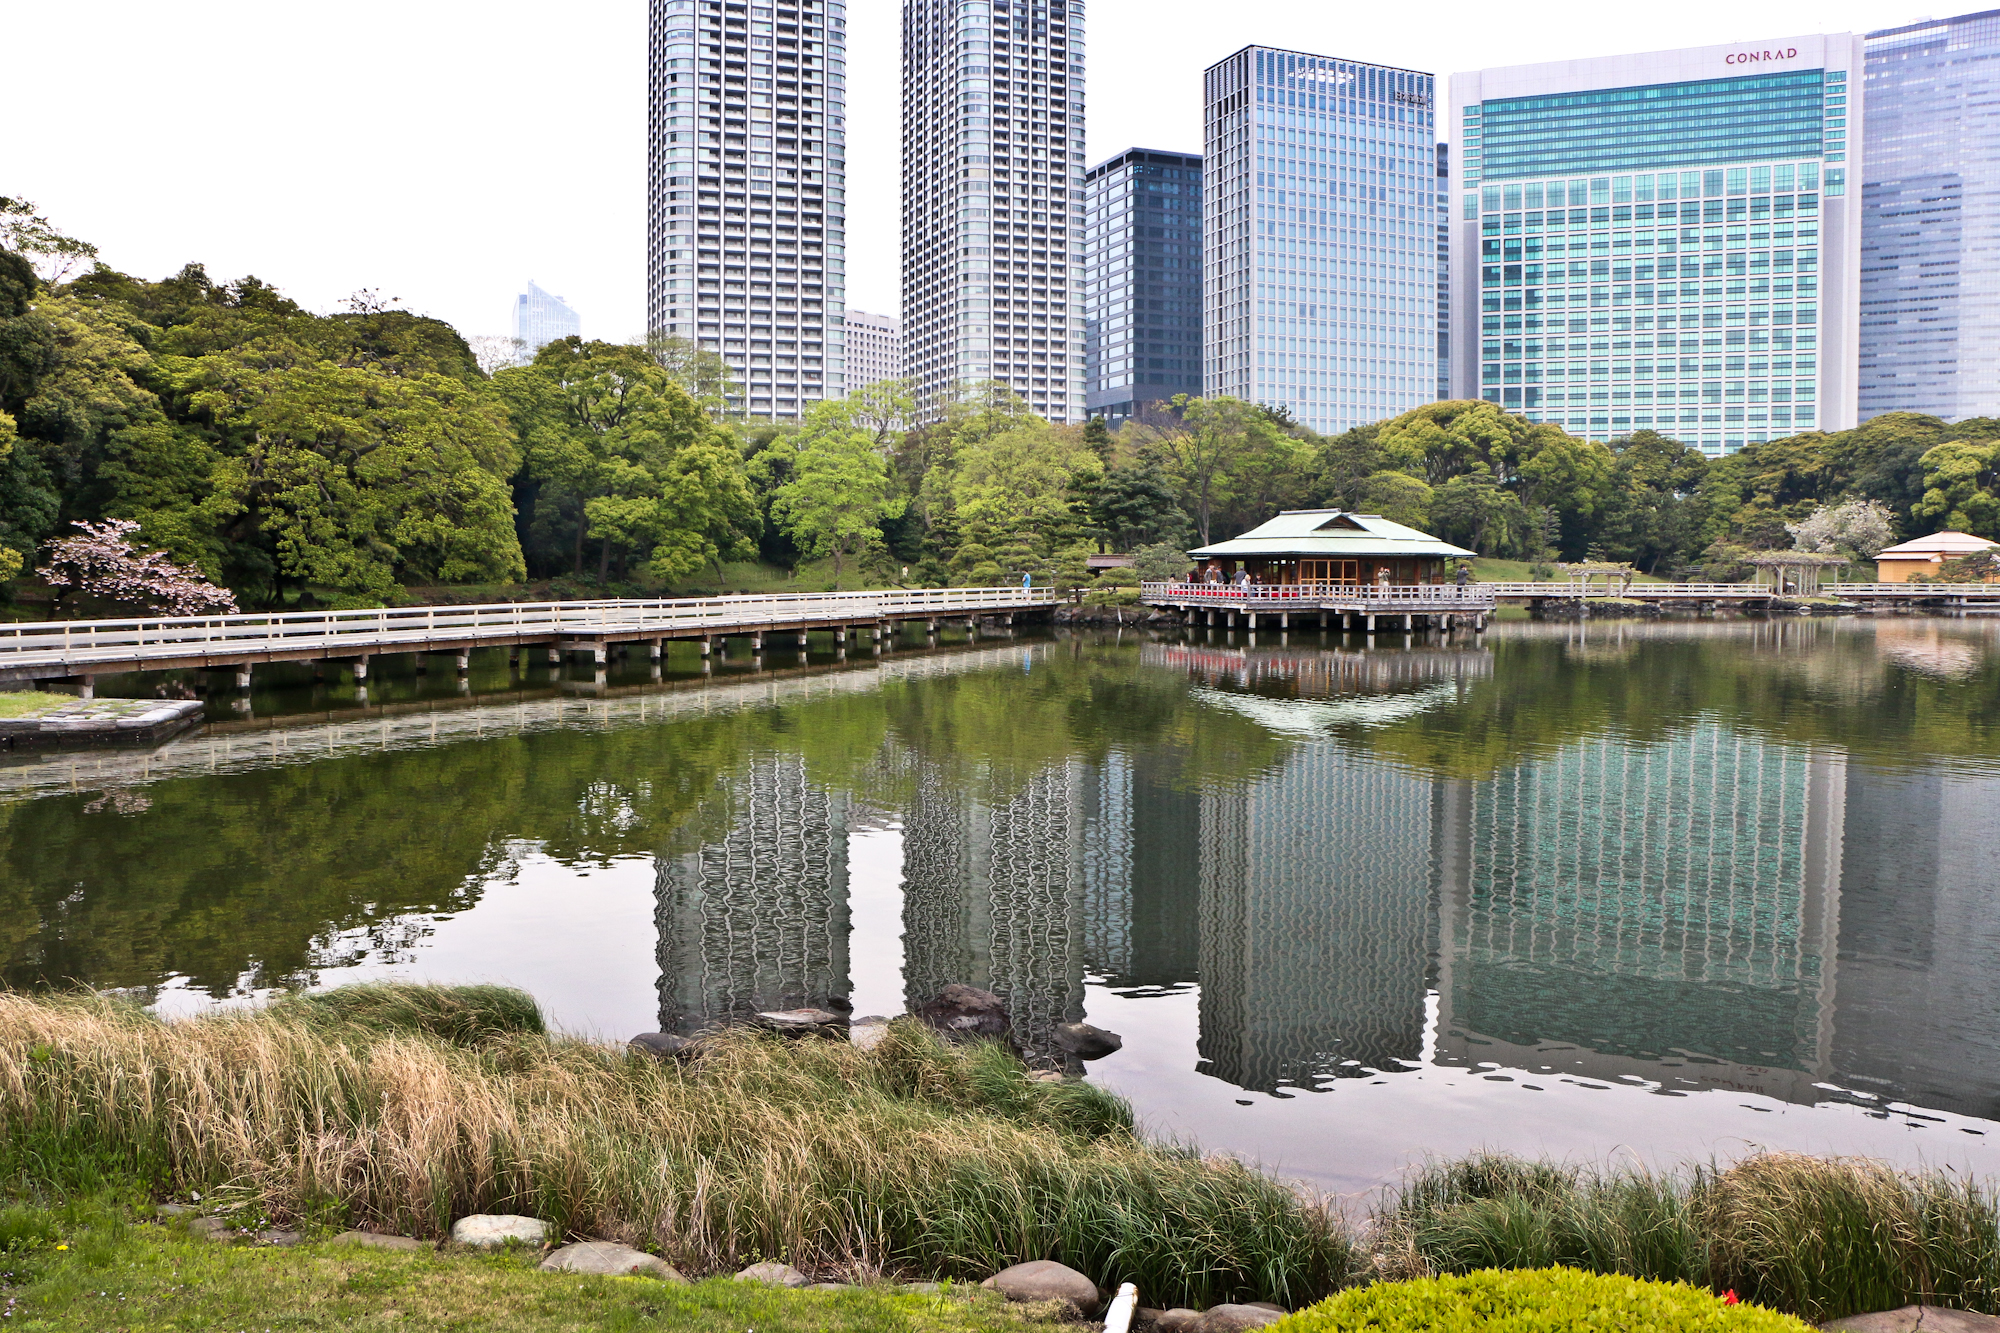 Tokyo Scene .  Hama-rikyu Gardens, a former preserve of the Tokugawa Shoguns, backed by the high-rises of Shimbashi.